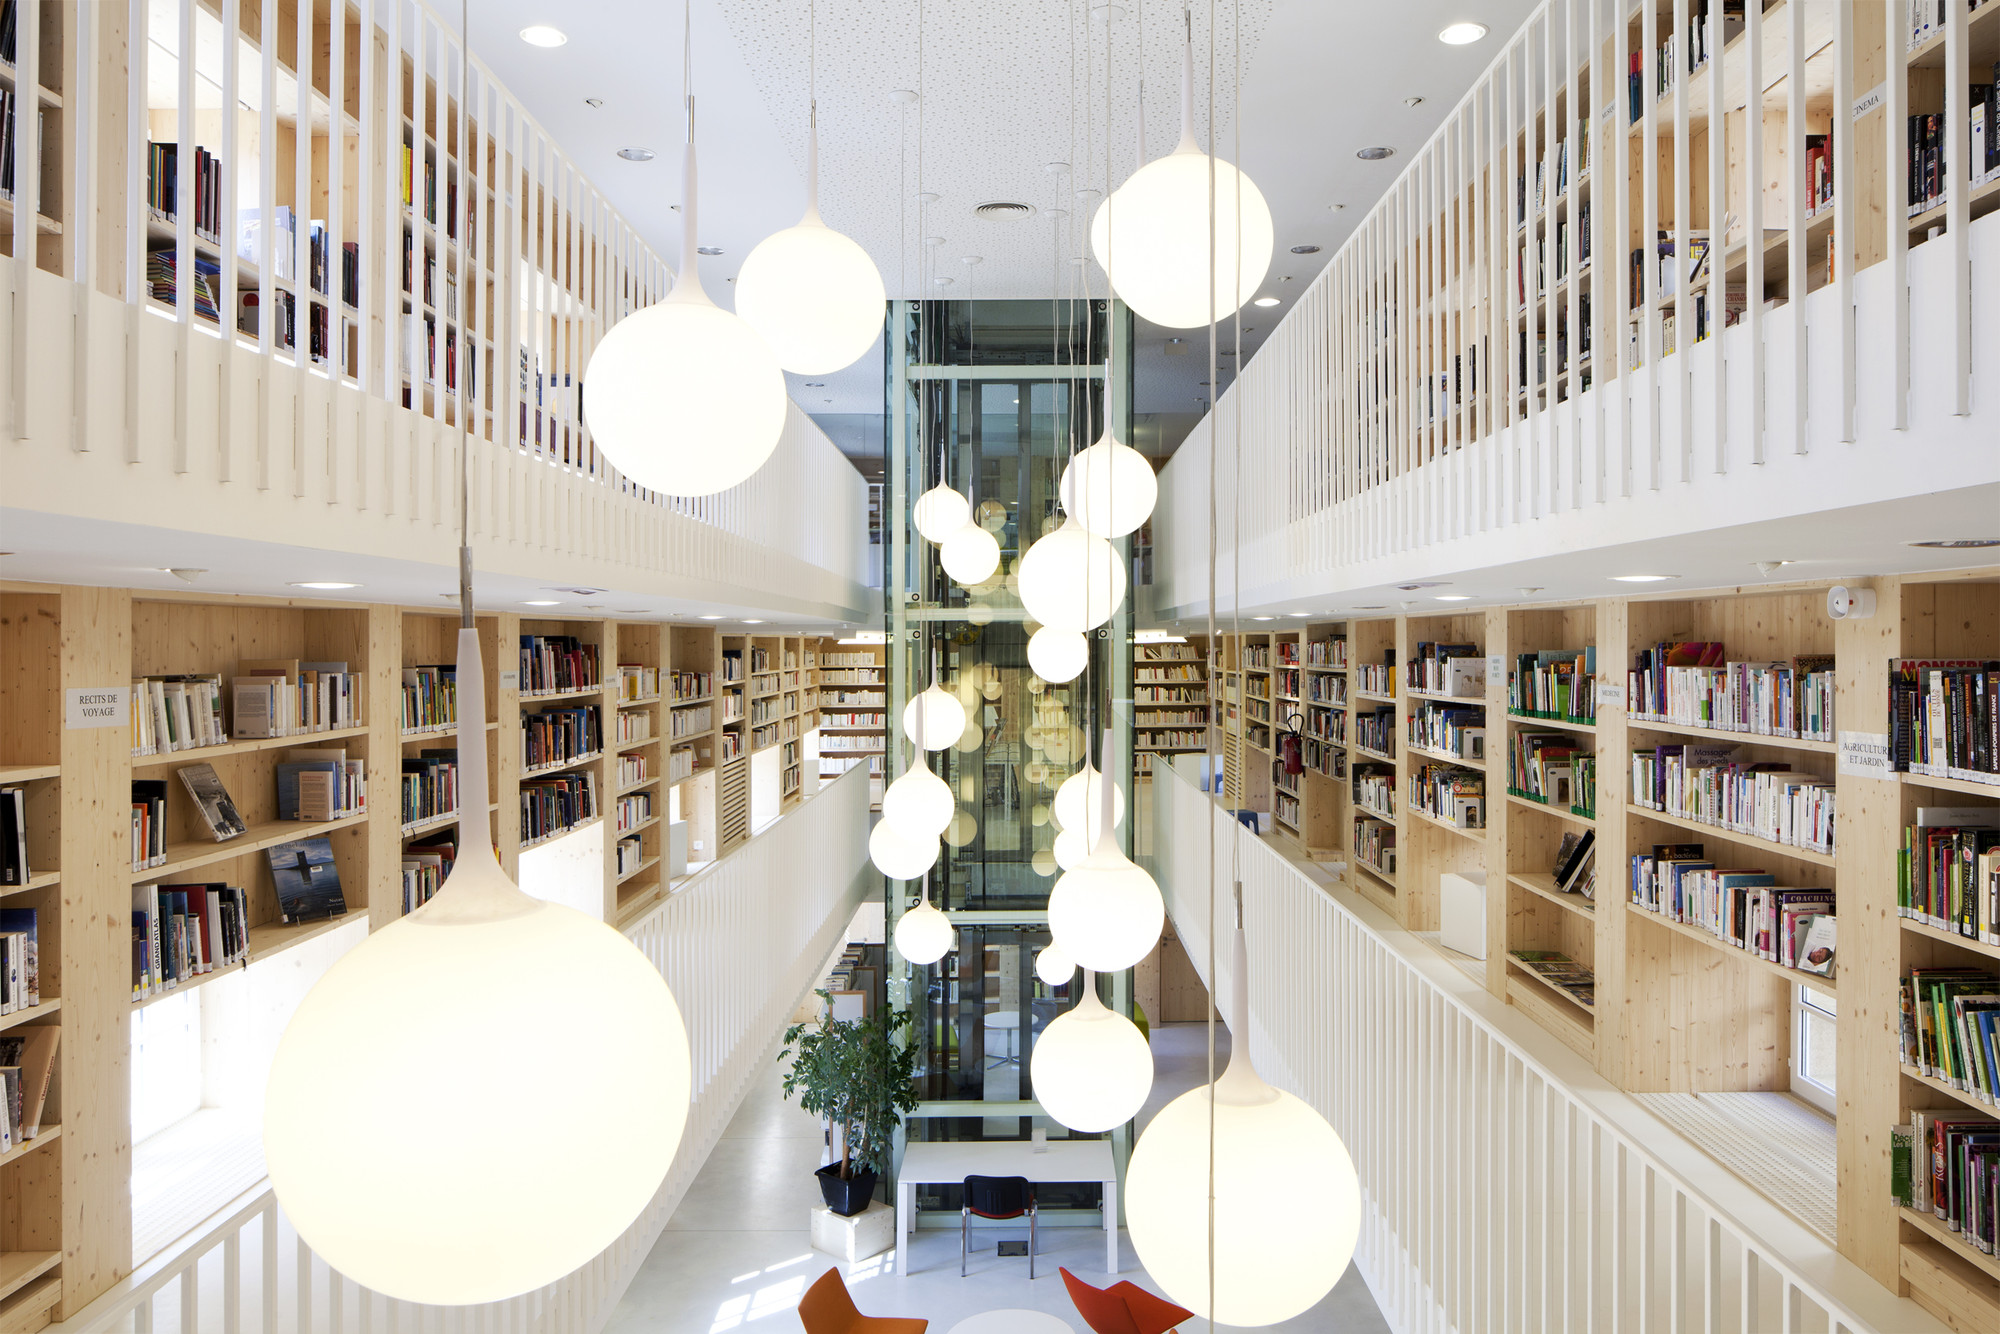 Refurbishment Of The Year BIG Library Gourdon France CoCo Architecture With Atelier